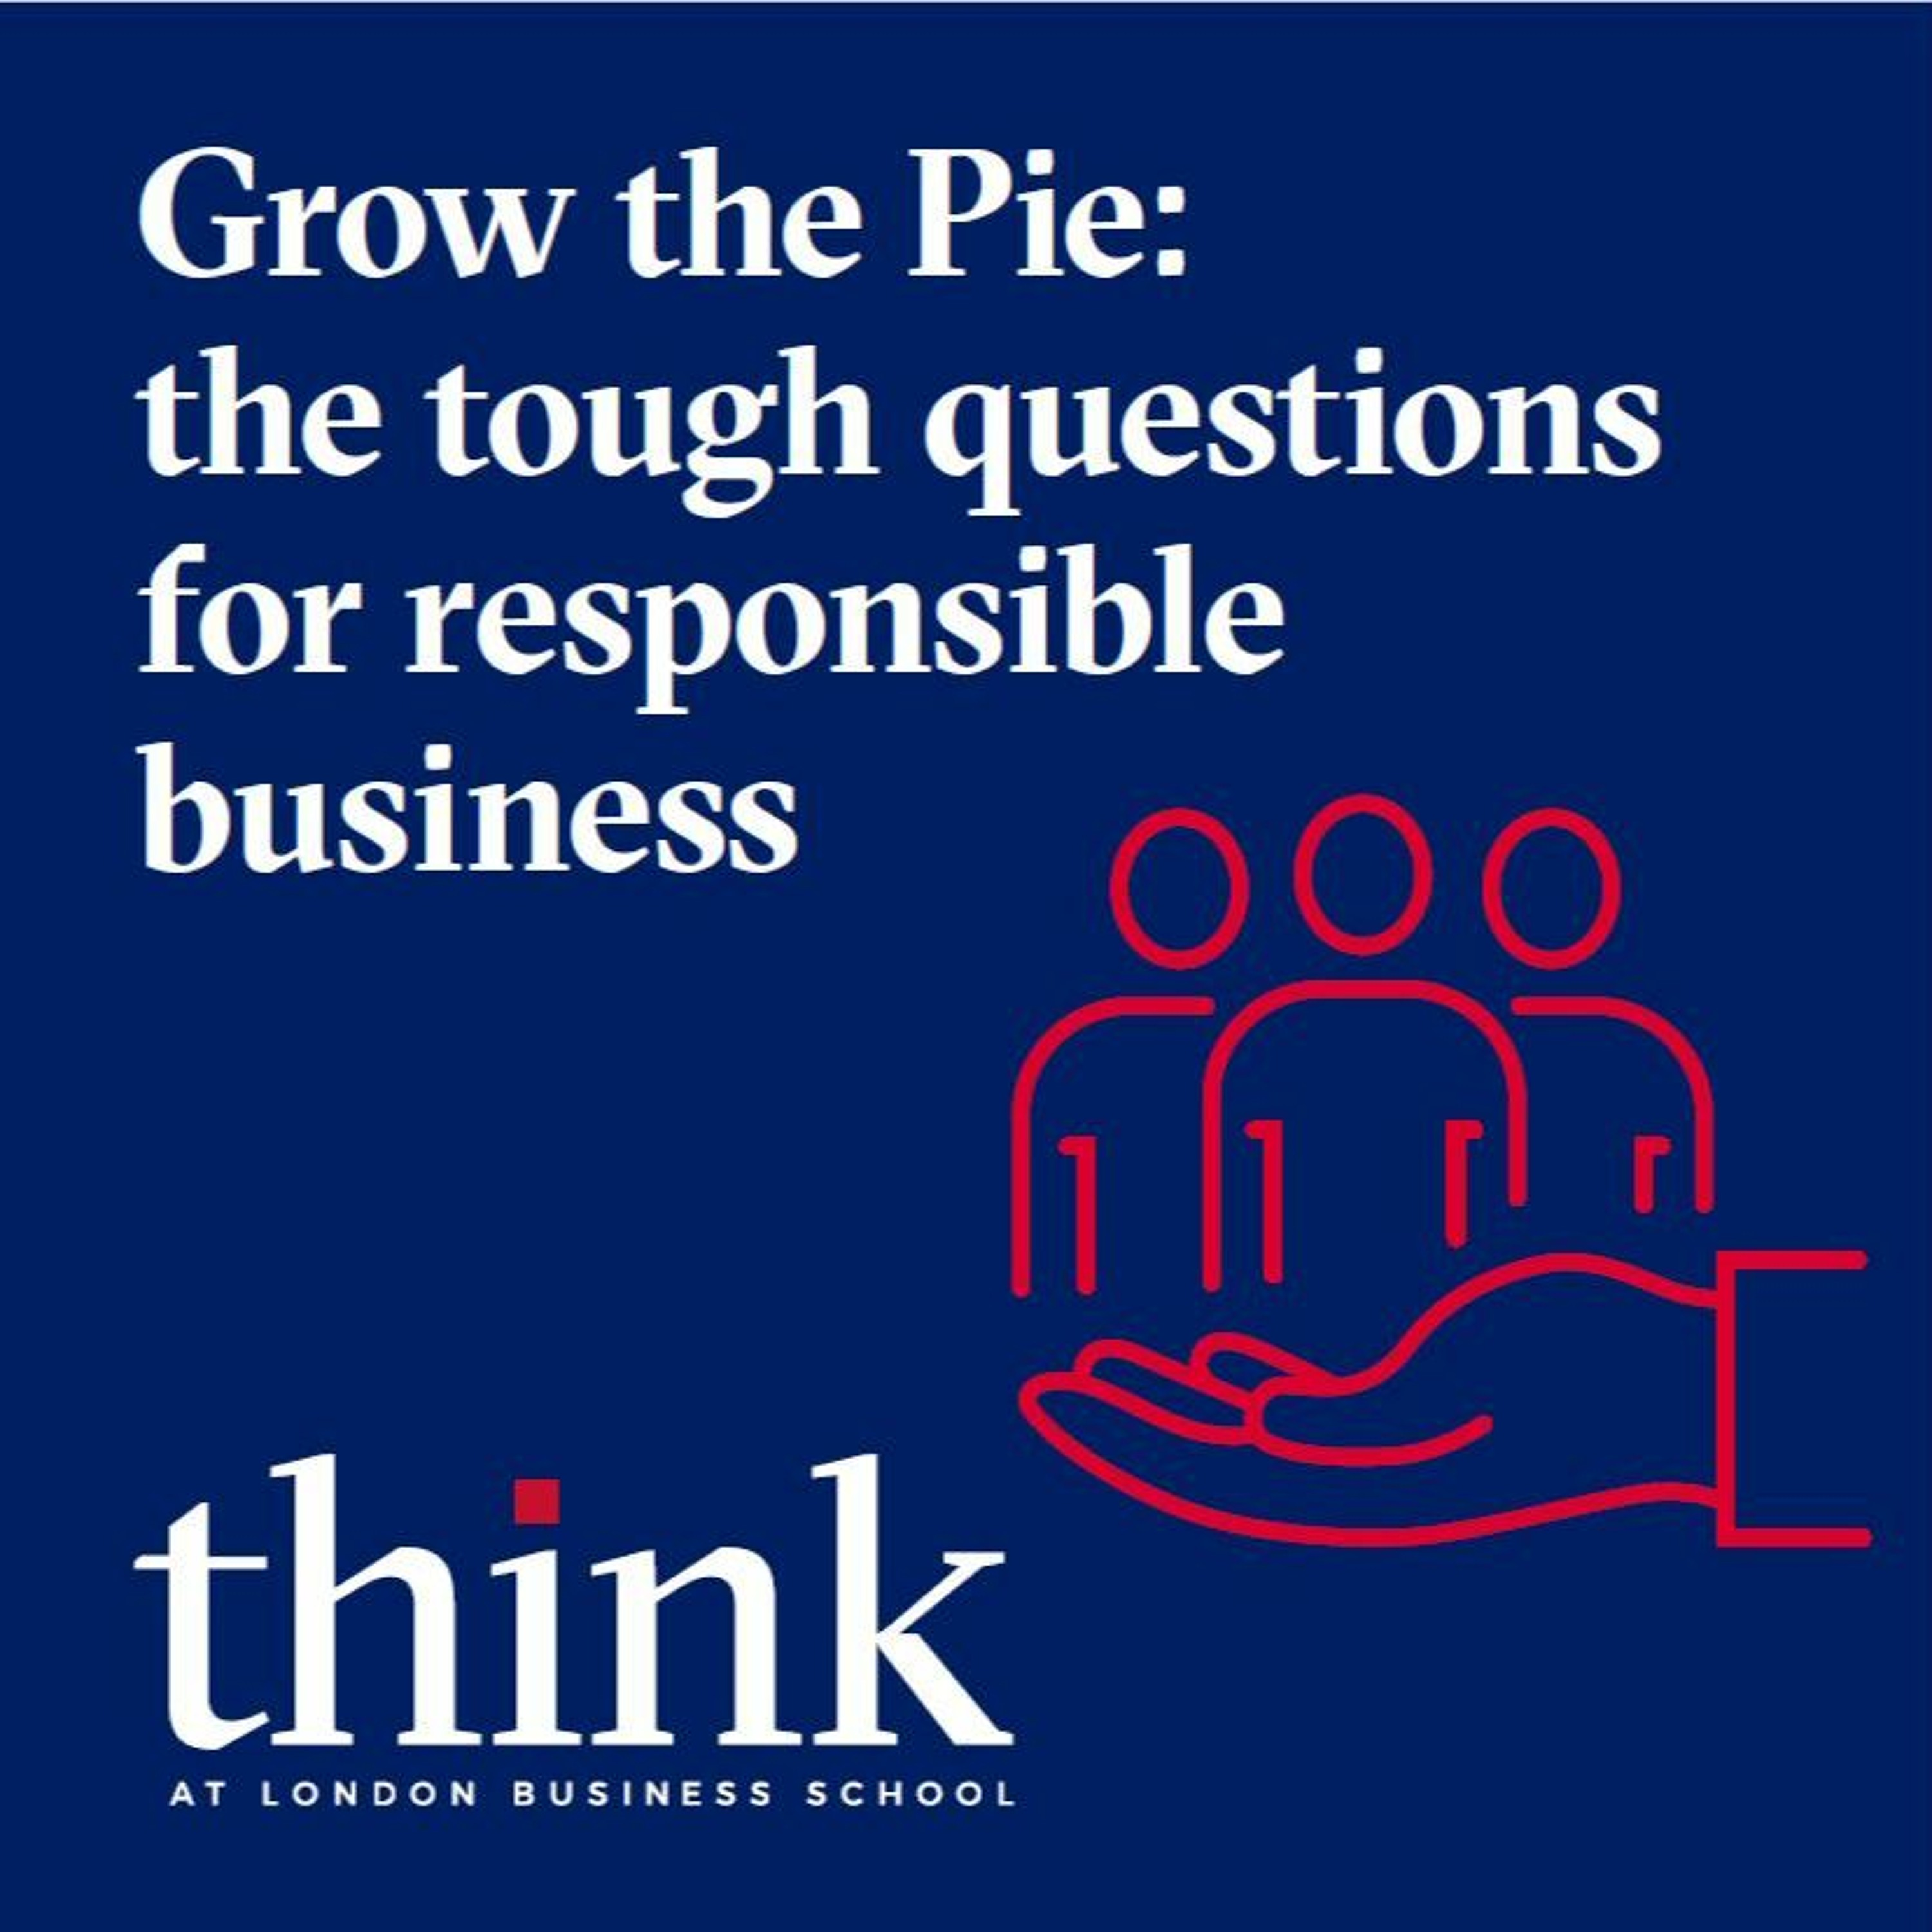 Grow the Pie: Do investors promote the long-term success of a company?